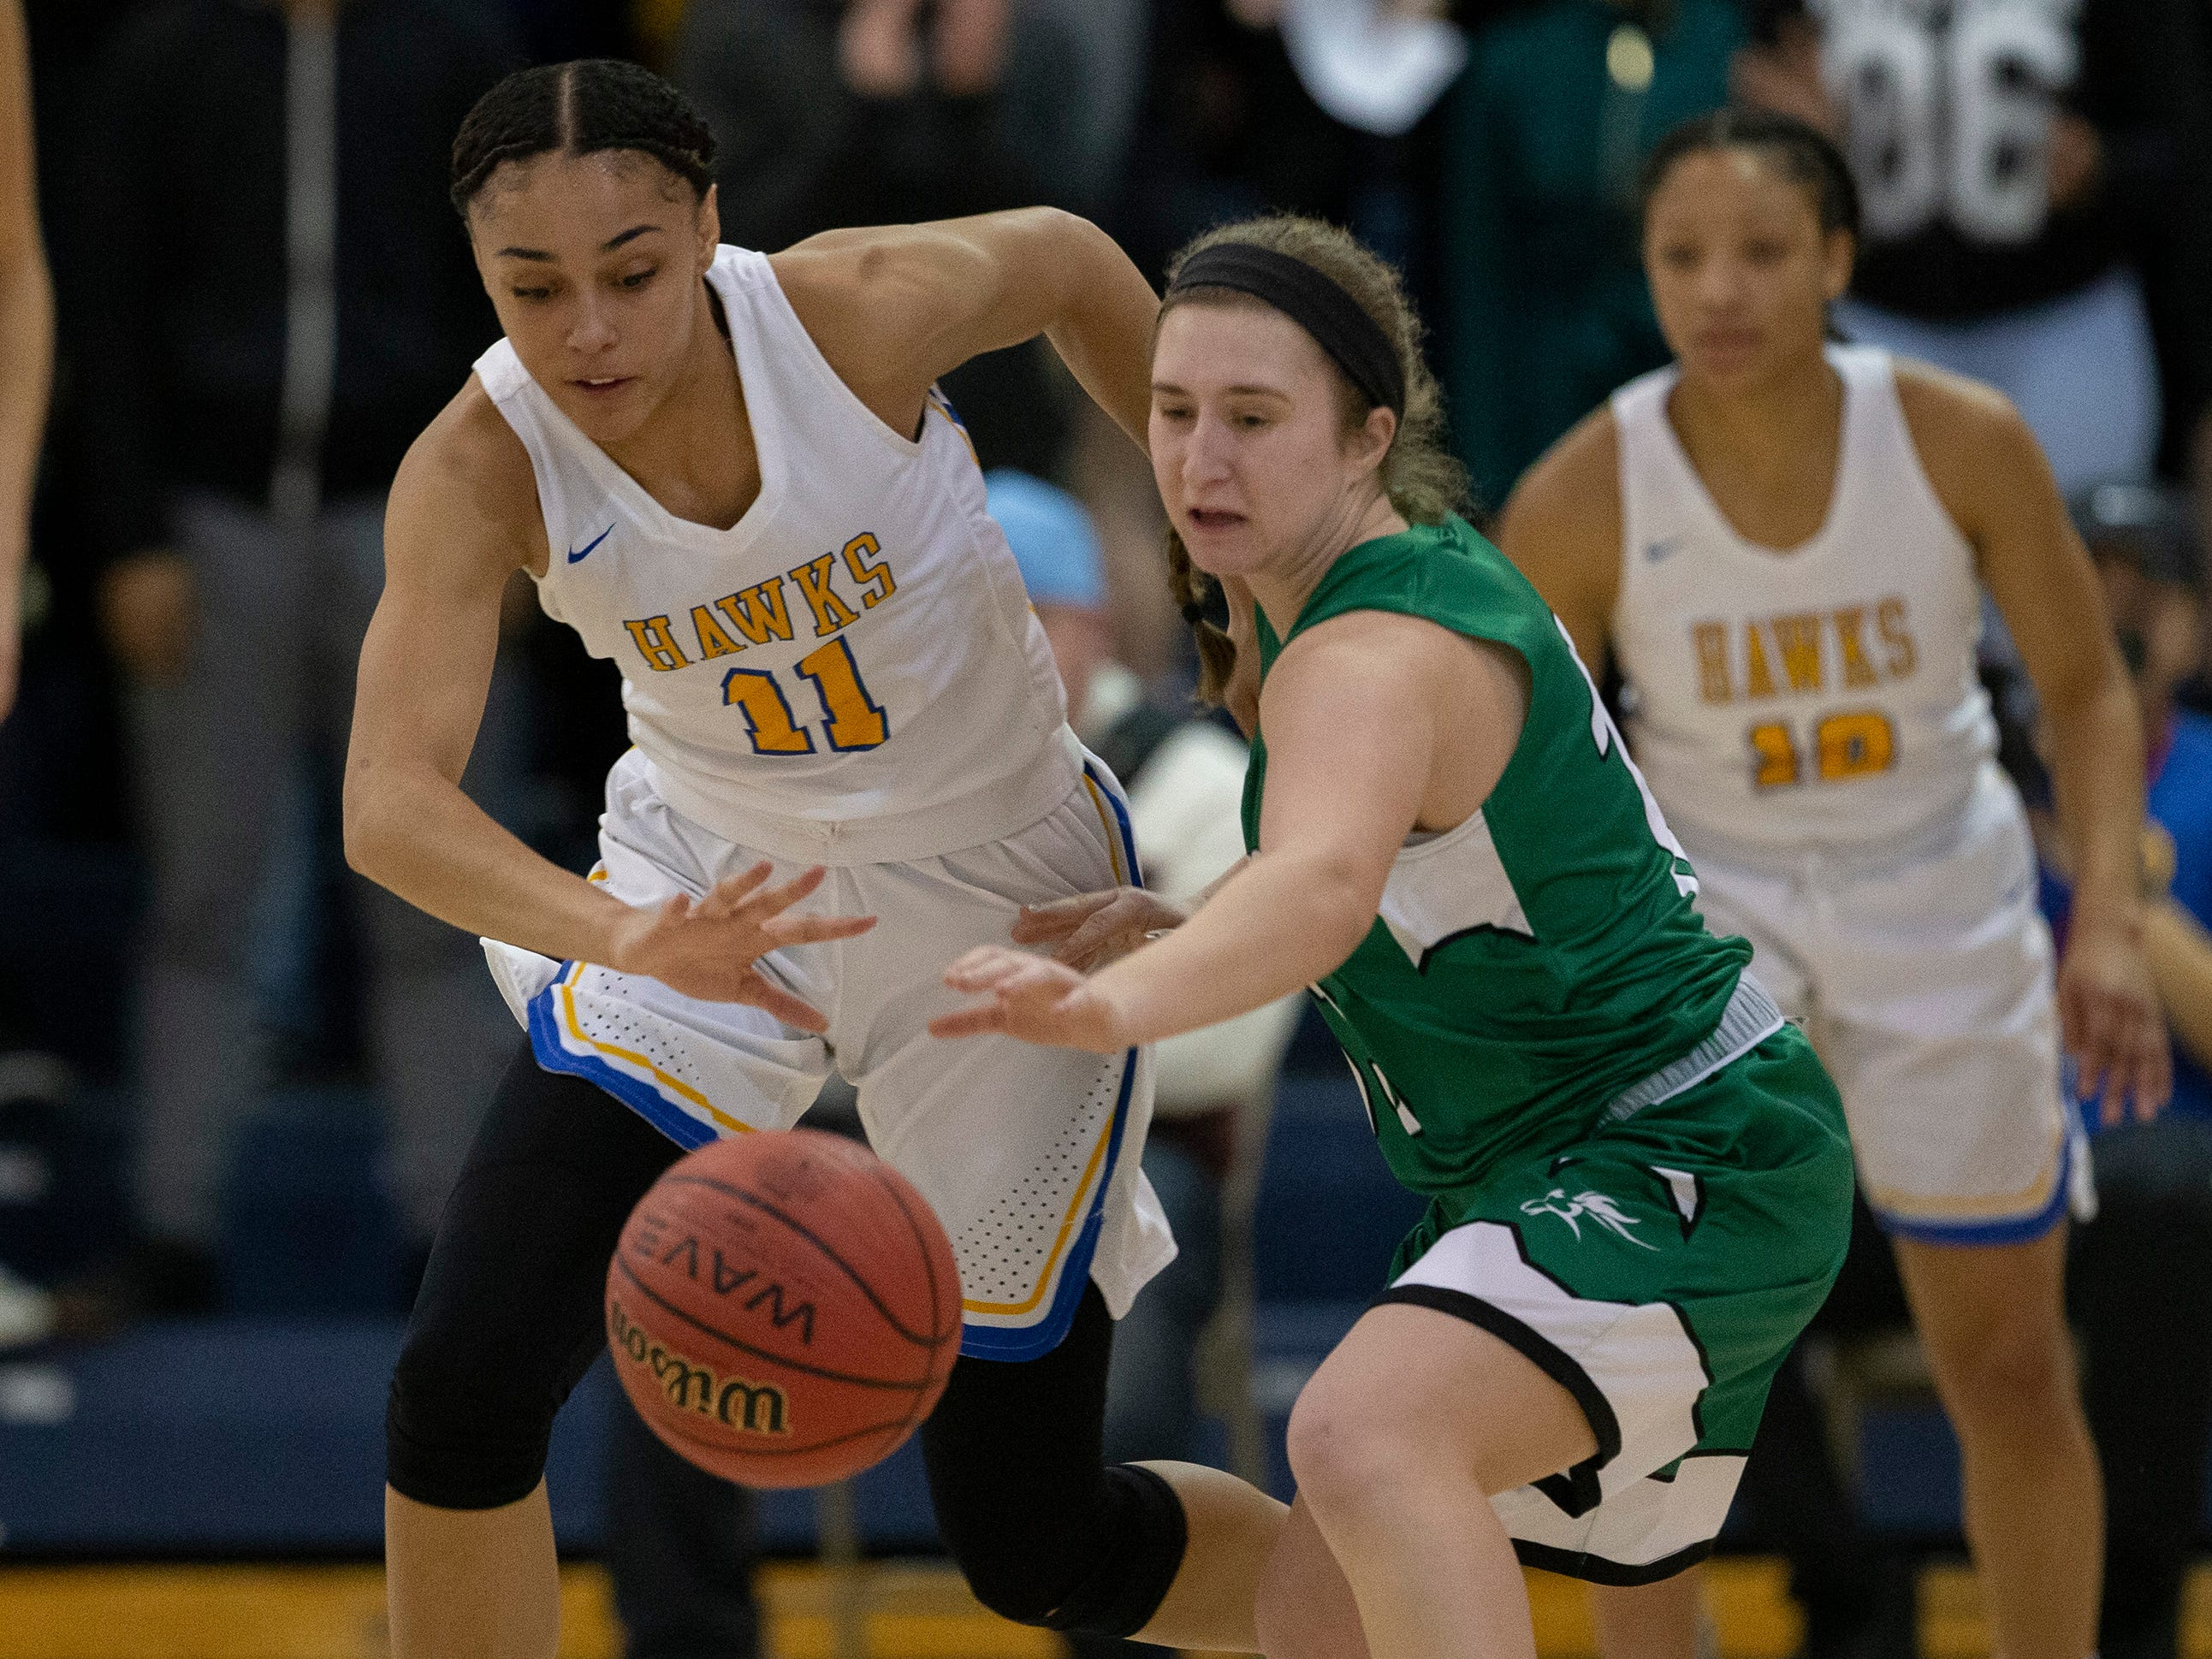 Manchester's Leilani Correa steals the ball away from Mainland's Madison Hafetz.  Manchester Girls Basketball vs Mainland in Tournament of Champions opening round game in Toms River on March 12, 2019